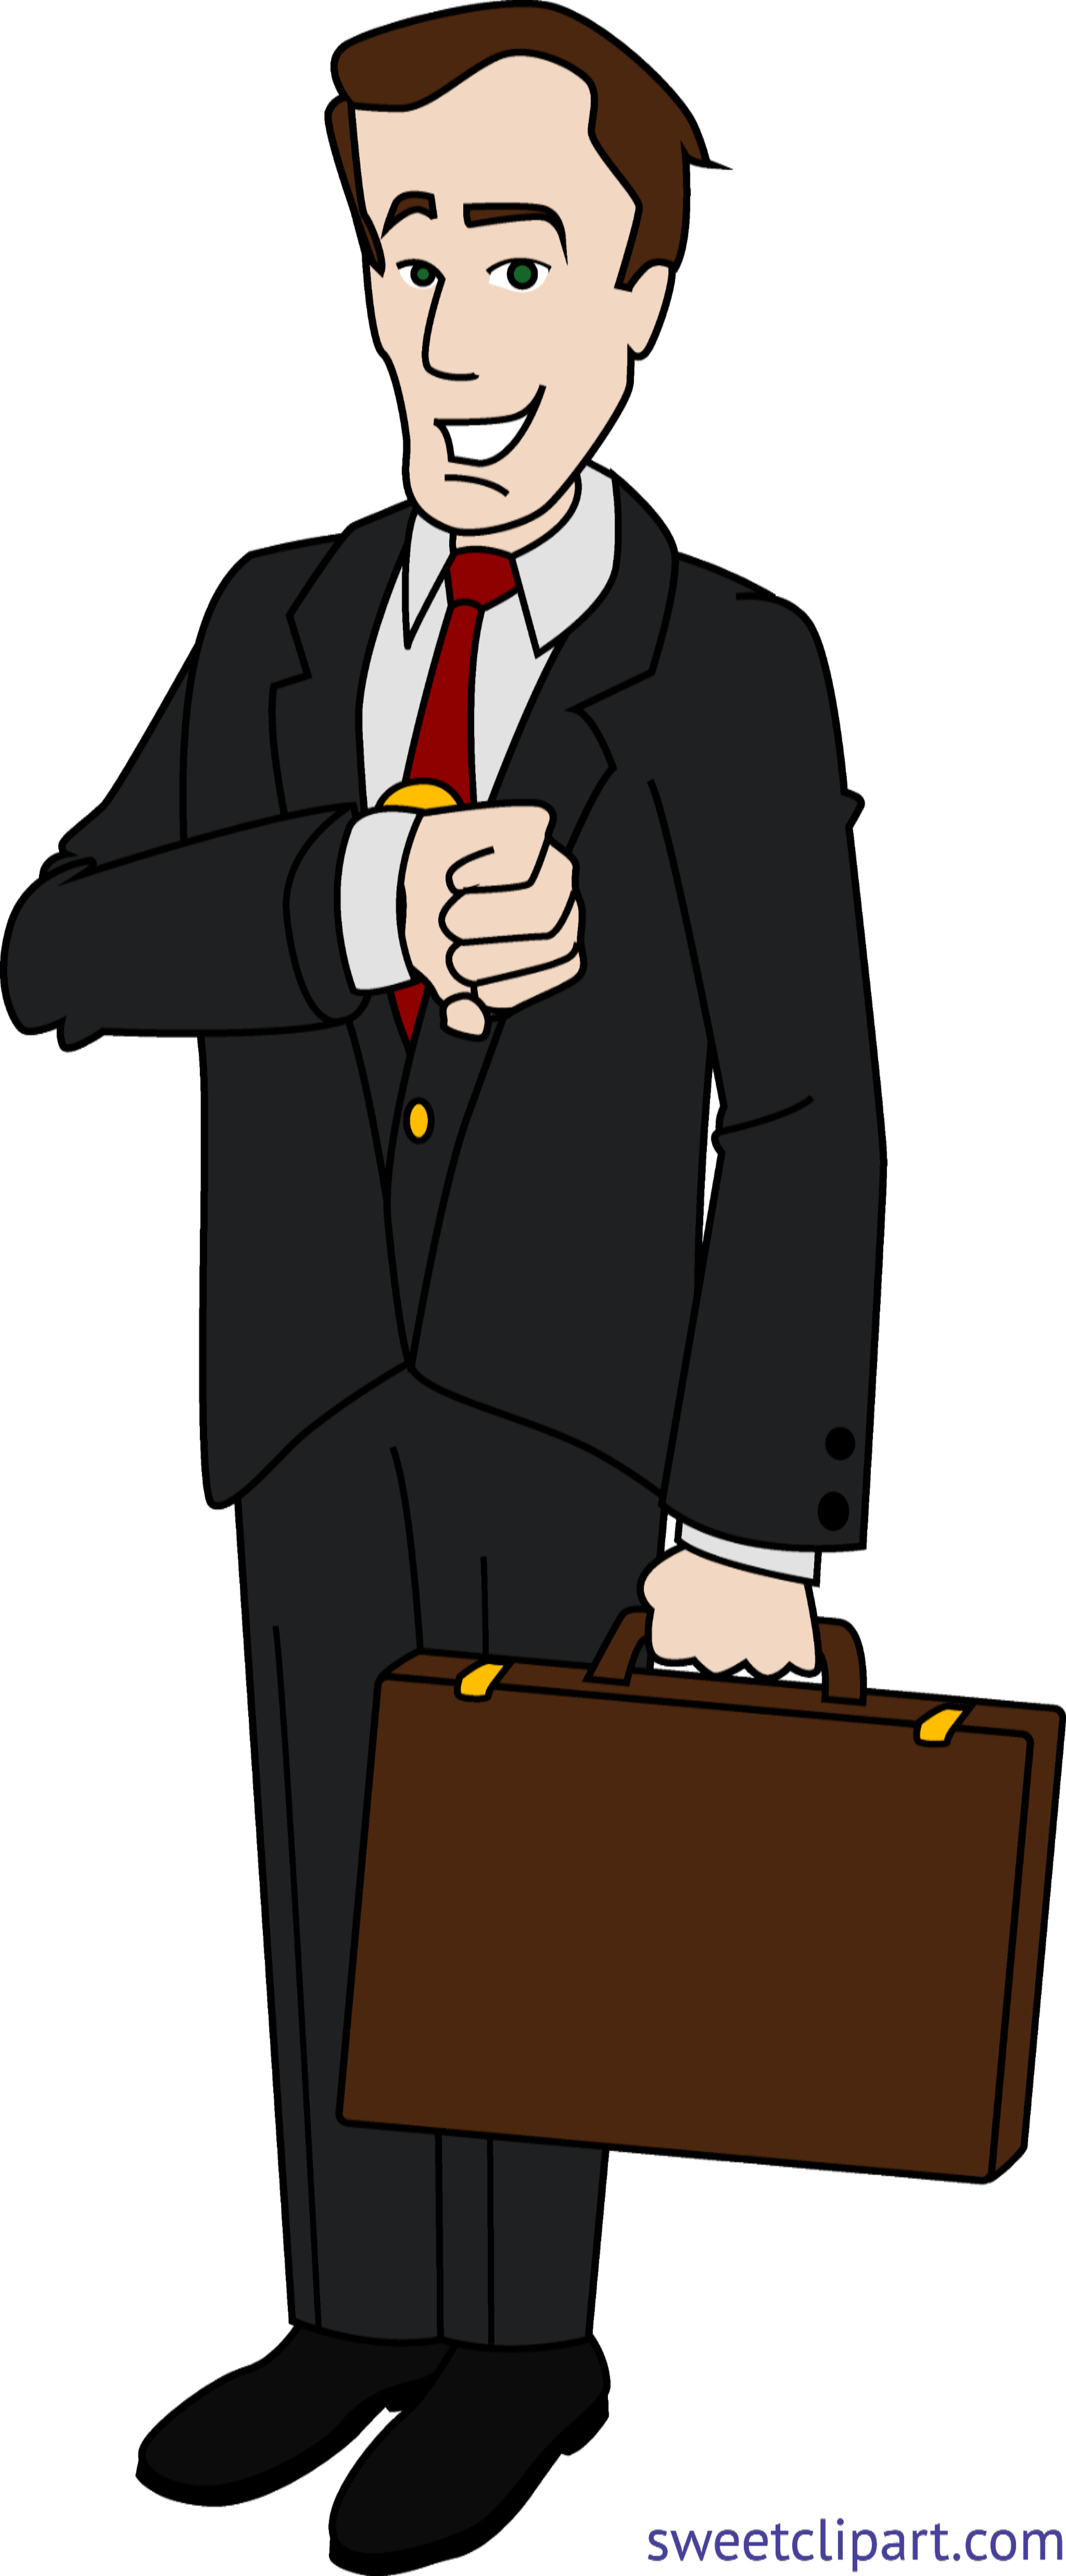 clip transparent stock Businessman clipart. Clip art sweet